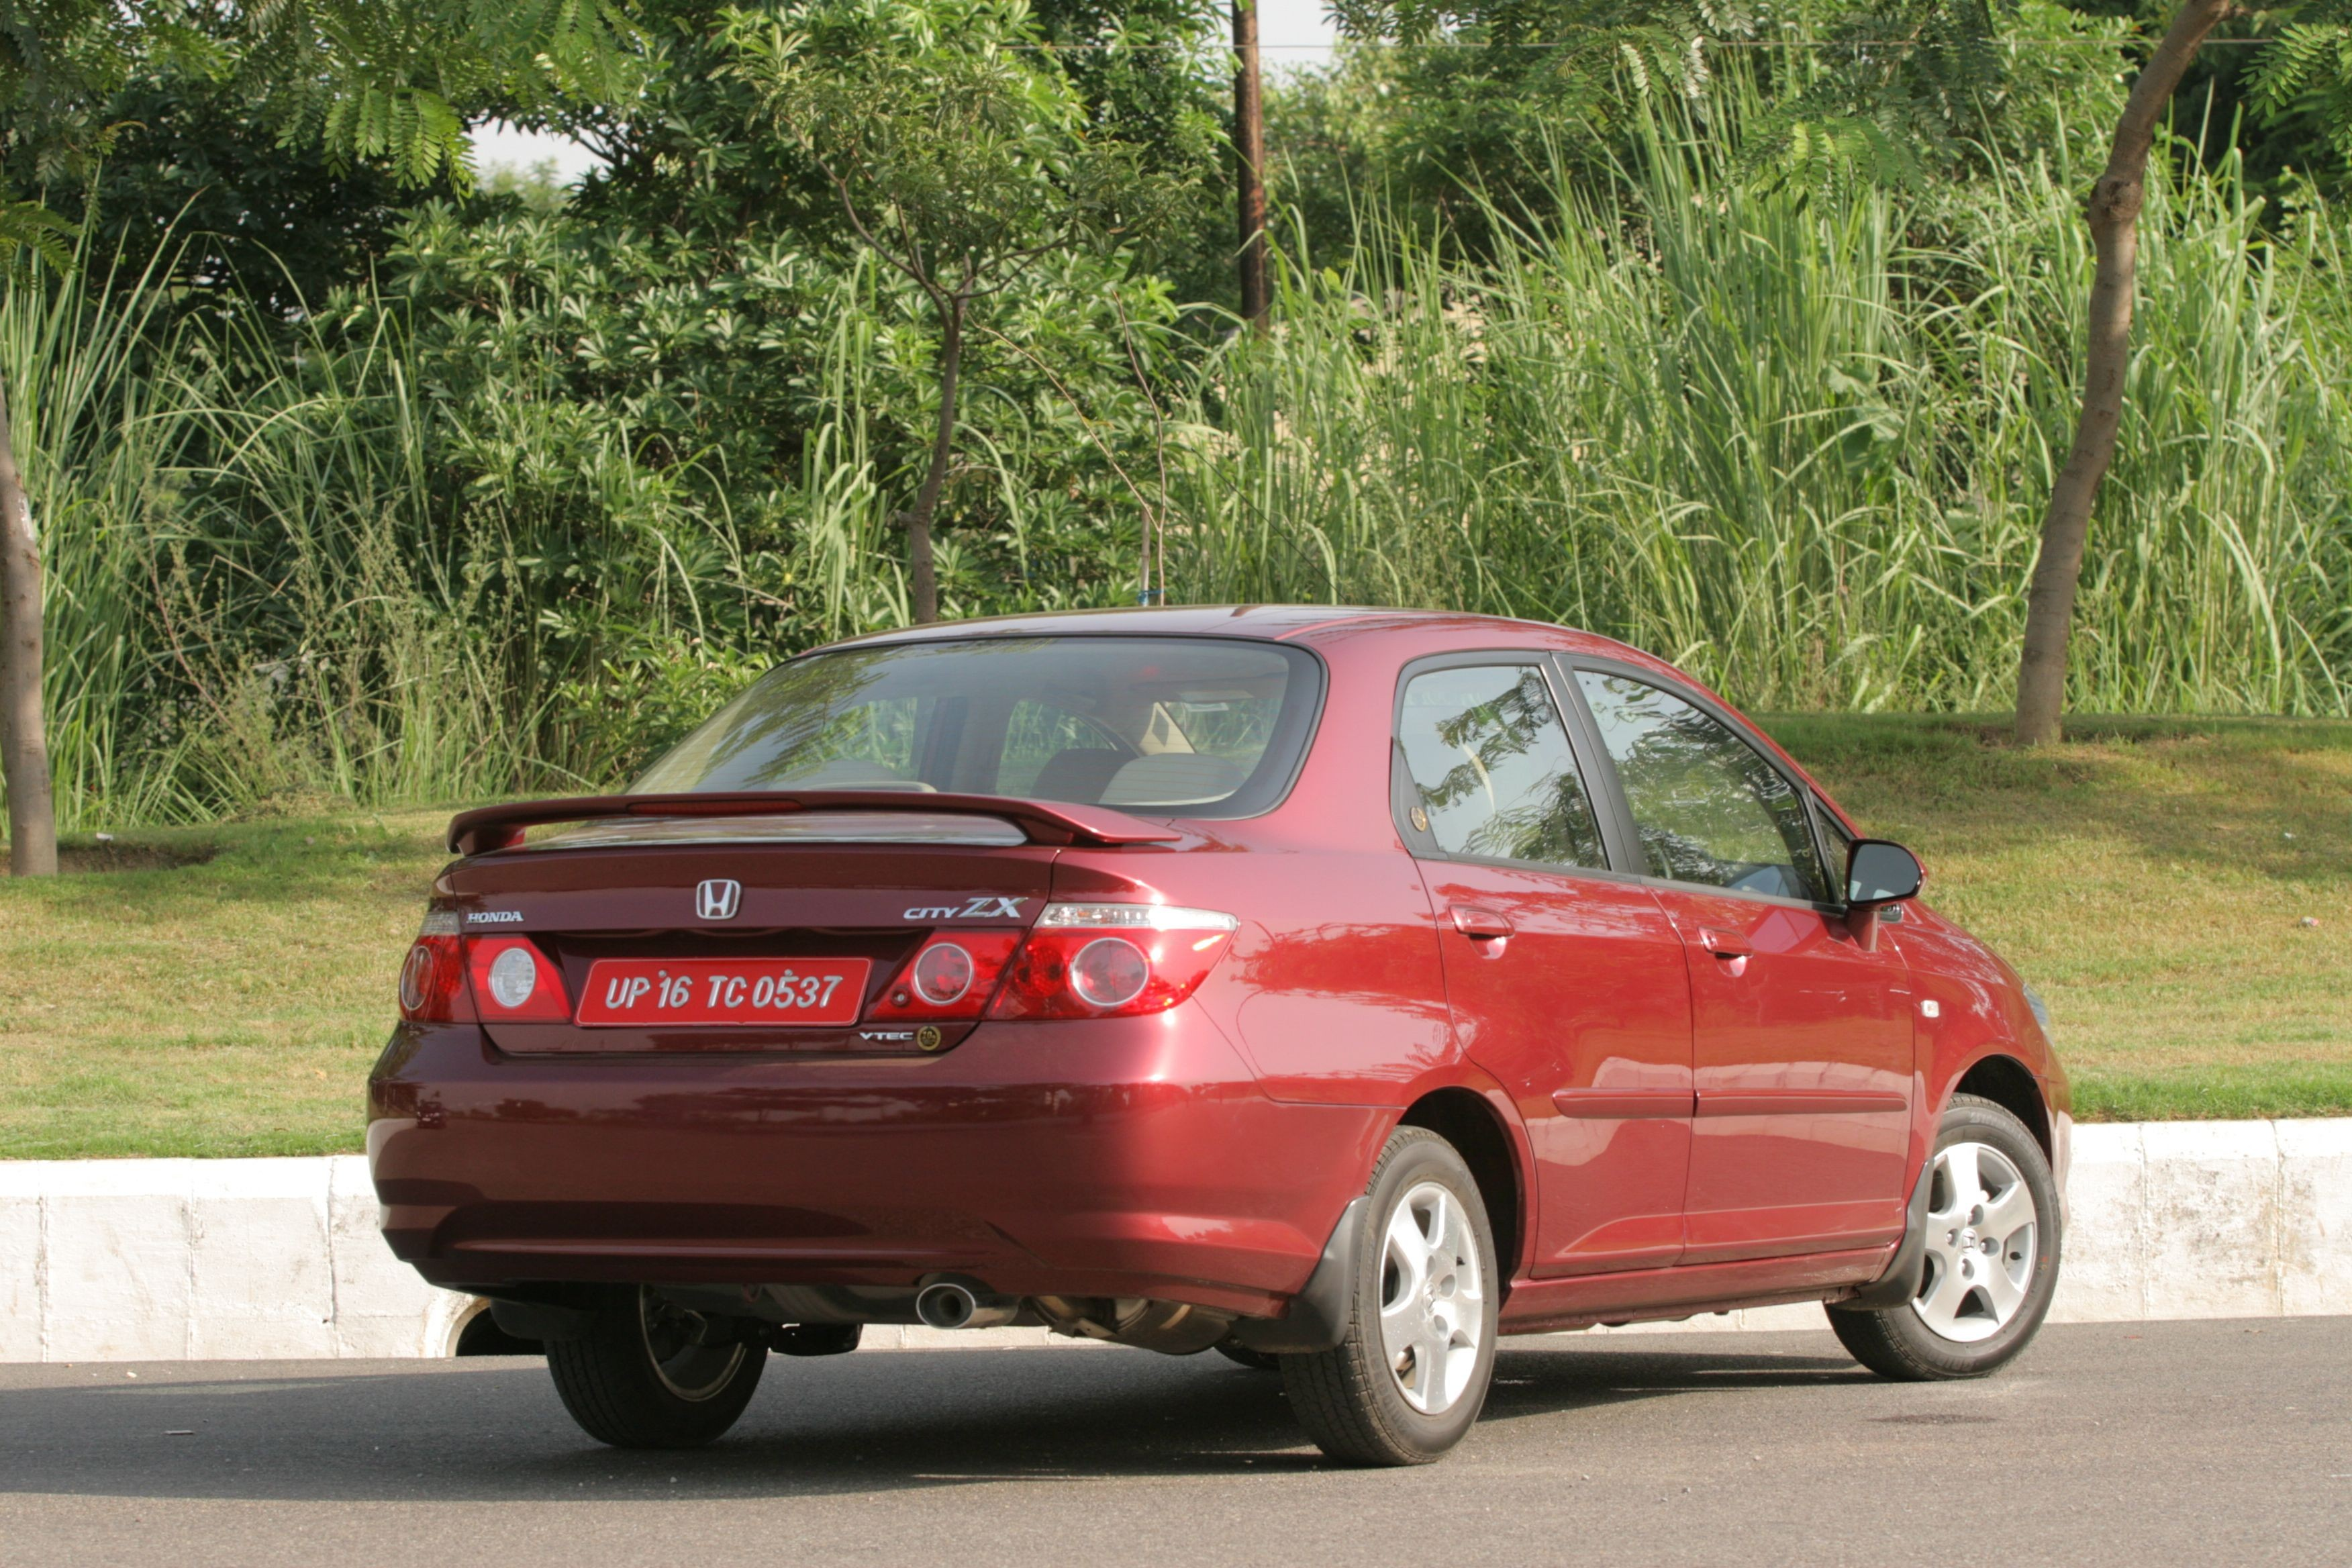 Honda City Zx Price In India Mileage Reviews Amp Images